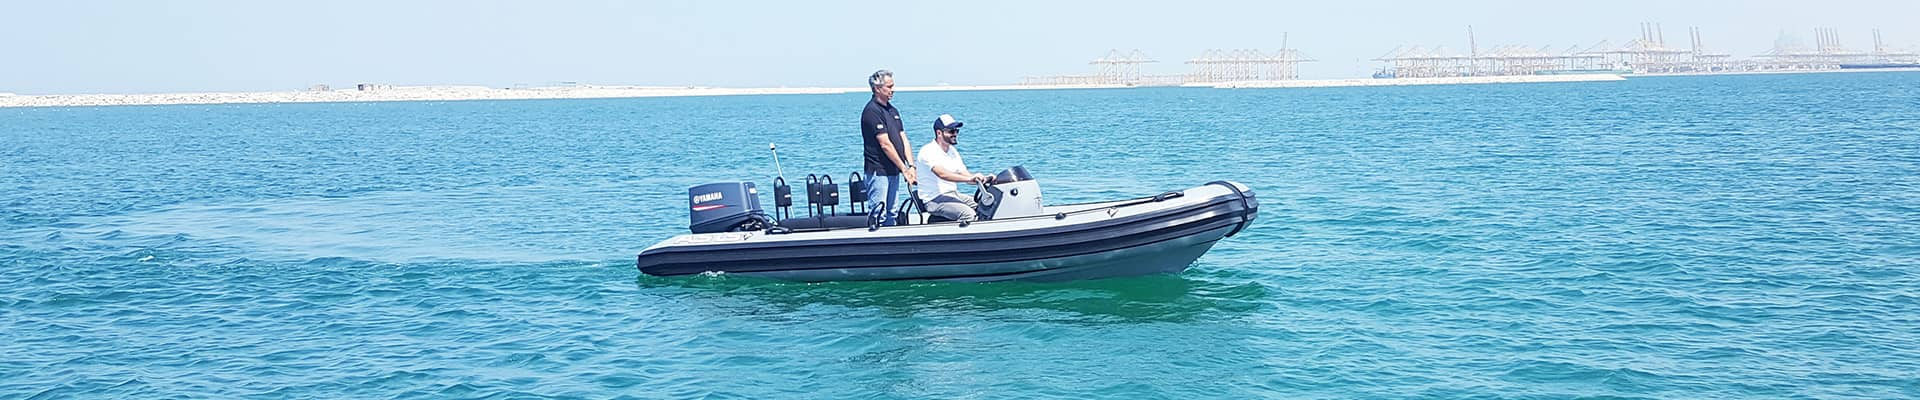 military-rigid-hull-inflatable-boat-navy